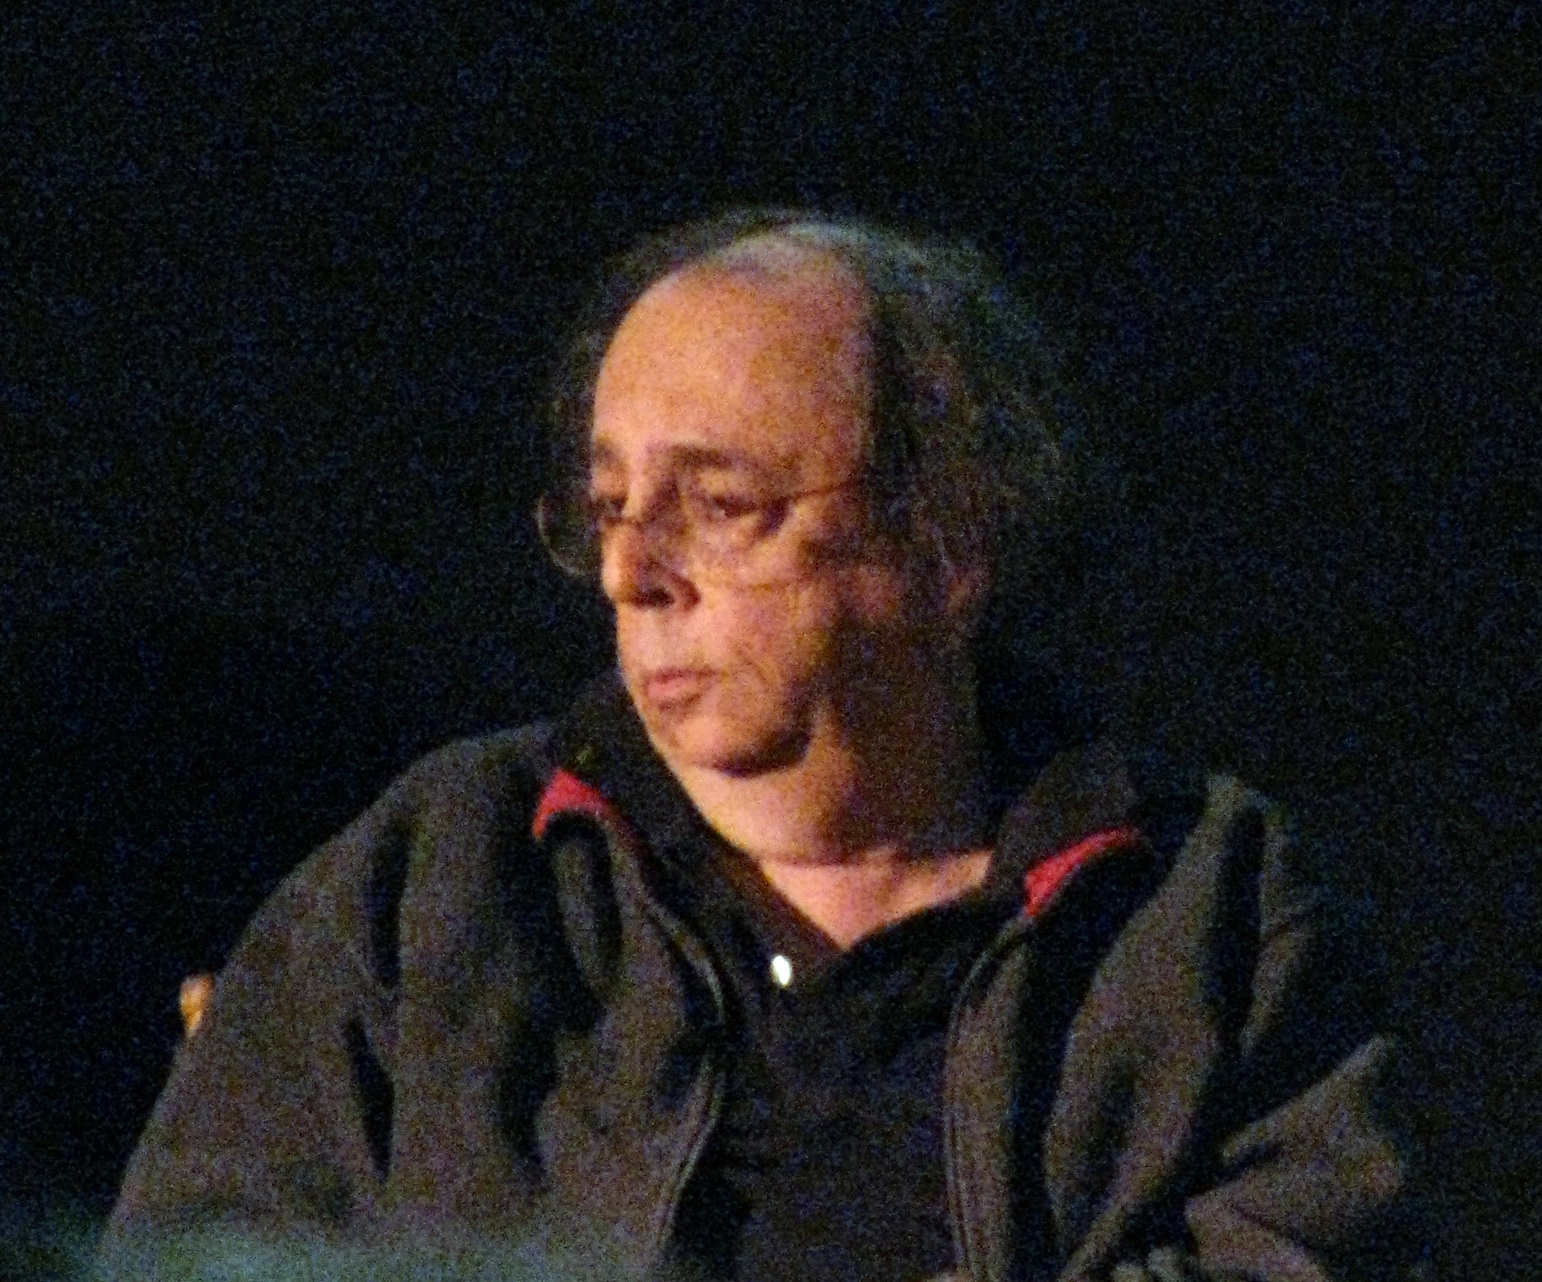 Richard Foreman in March 2009